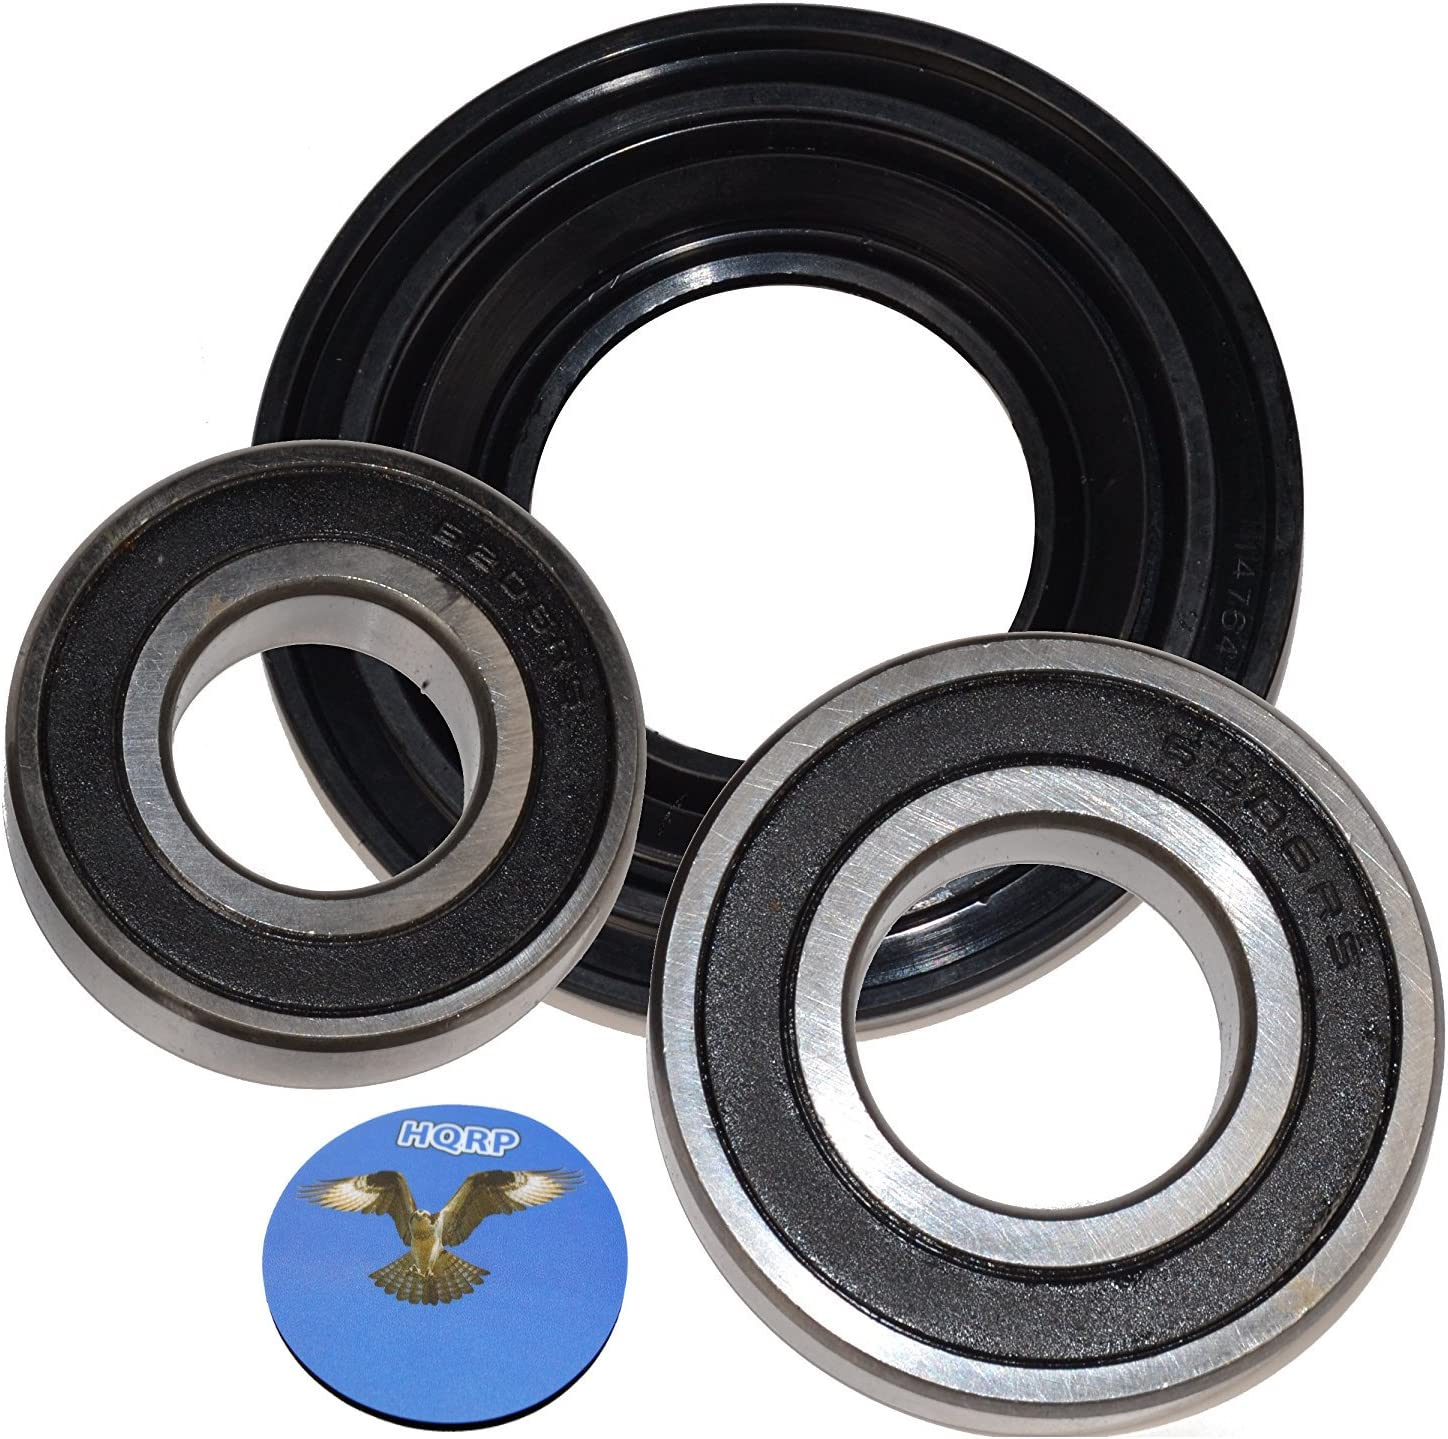 HQRP Bearing and Seal Kit Compatible With Maytag AP3970398 MAH22PDAWW0 MAH22PDAWW1 MAH22PDAXW0 MAH22PRAWW0 MAH22PRAWW1 MHWE200XW00 MHWZ400TQ03 Front Load Washer Tub + HQRP Coaster